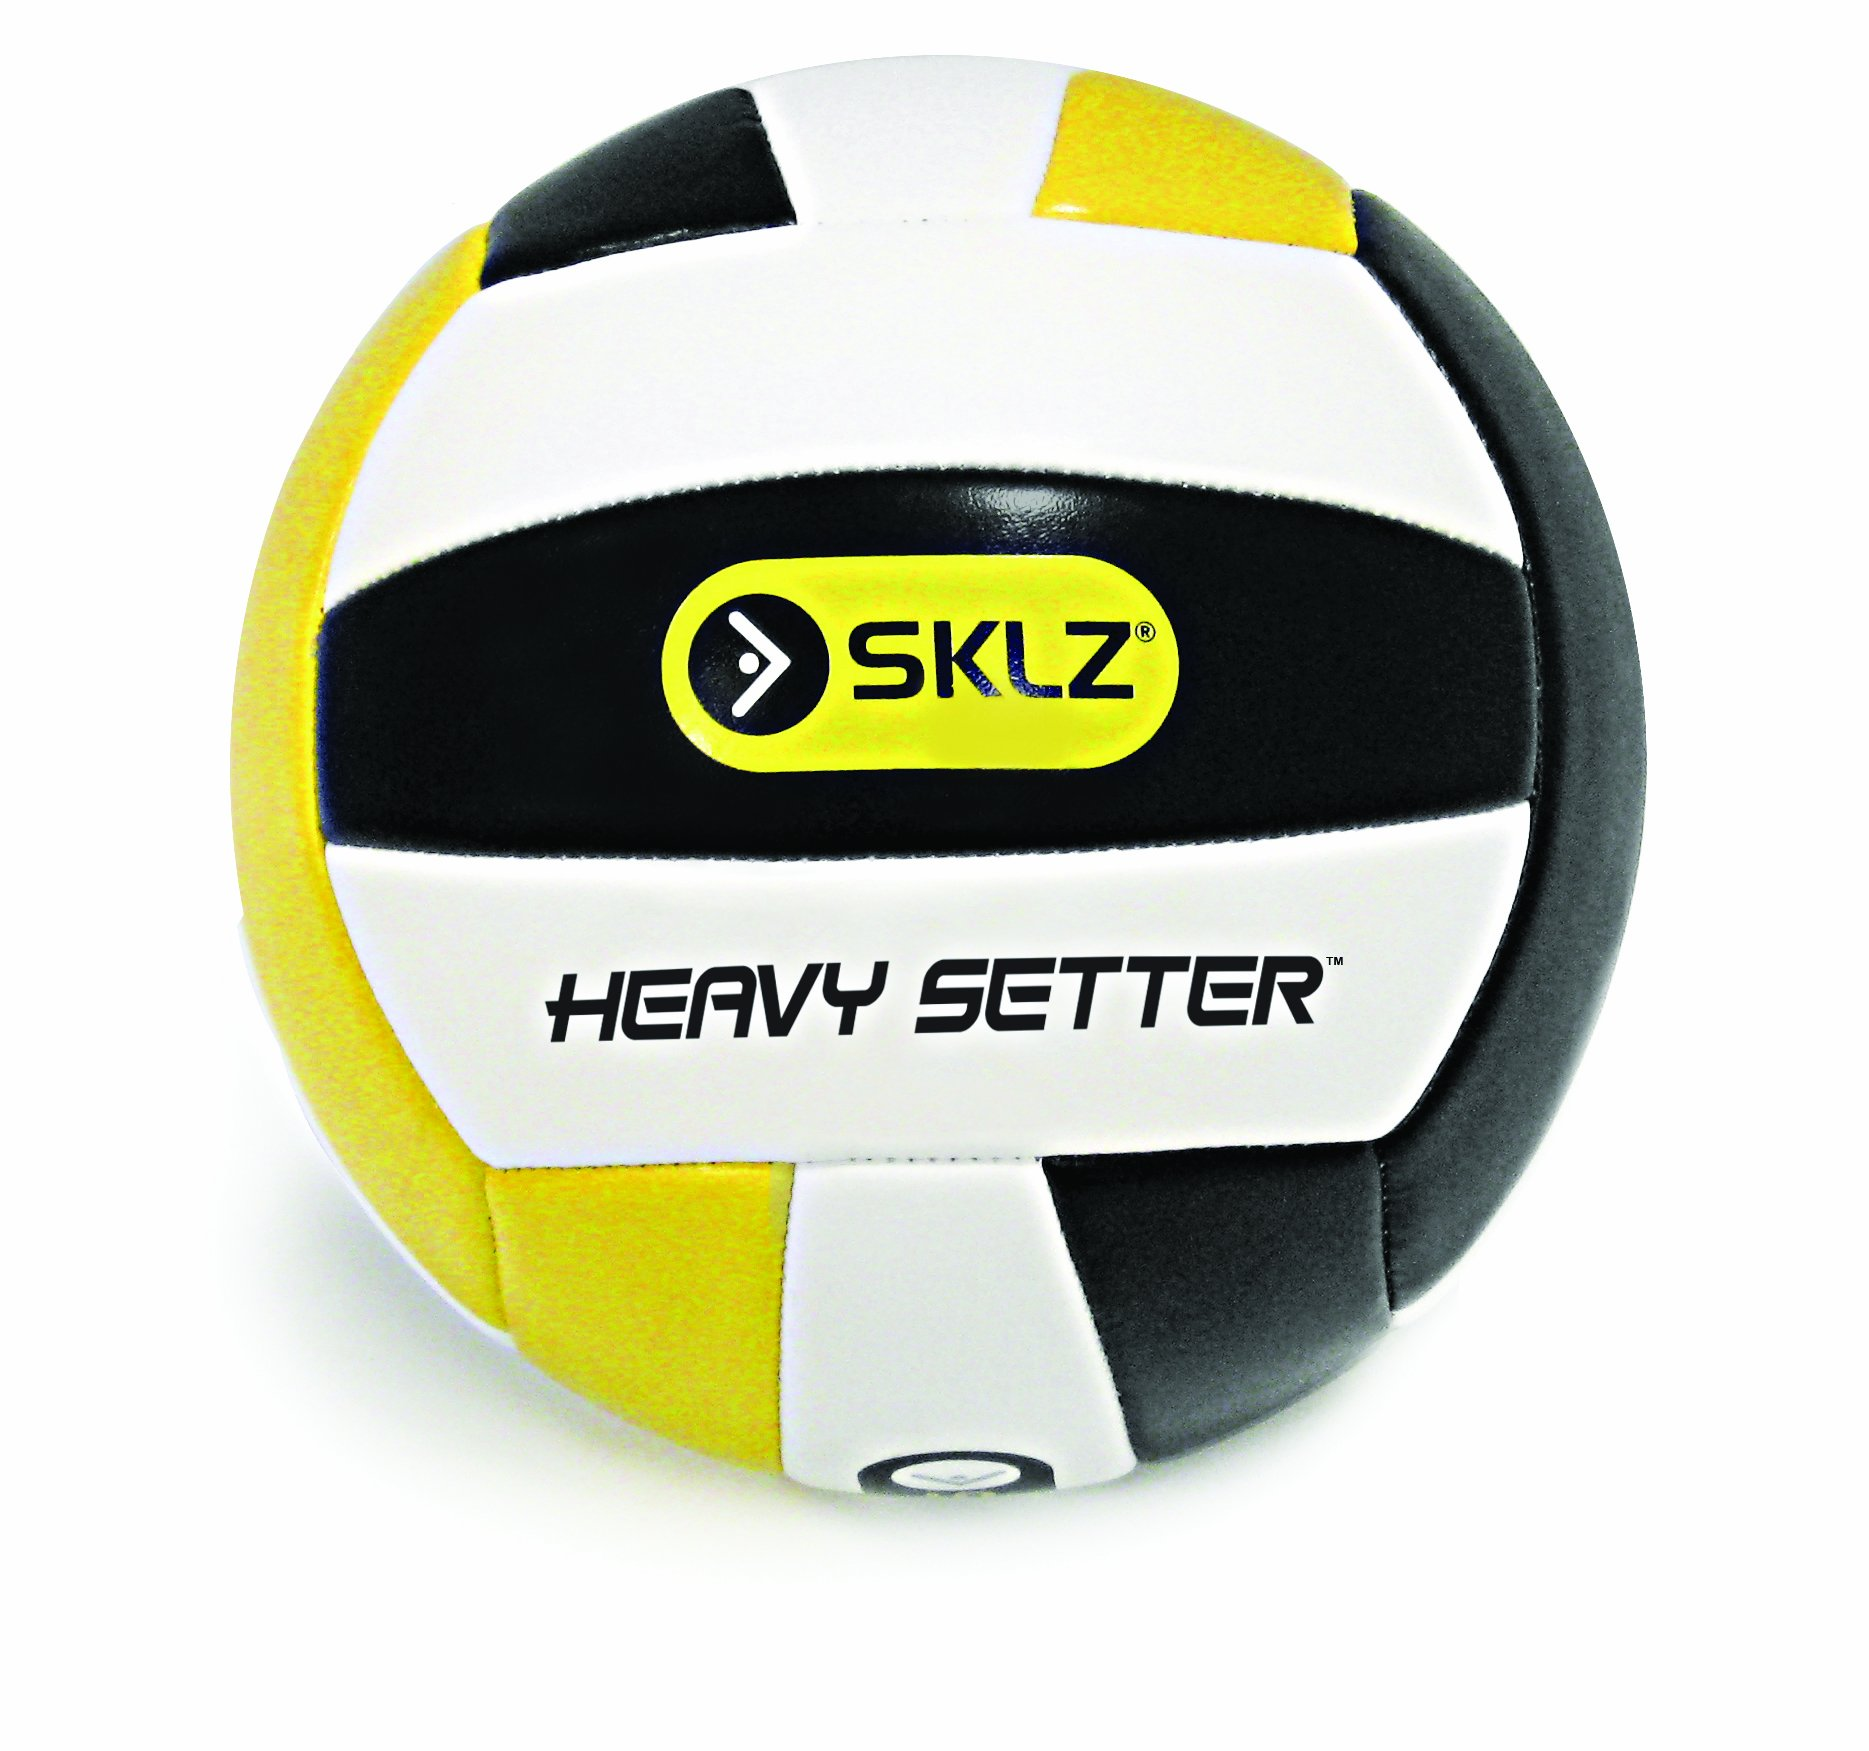 SKLZ Heavy Setter Weighted Volleyball Trainer by SKLZ